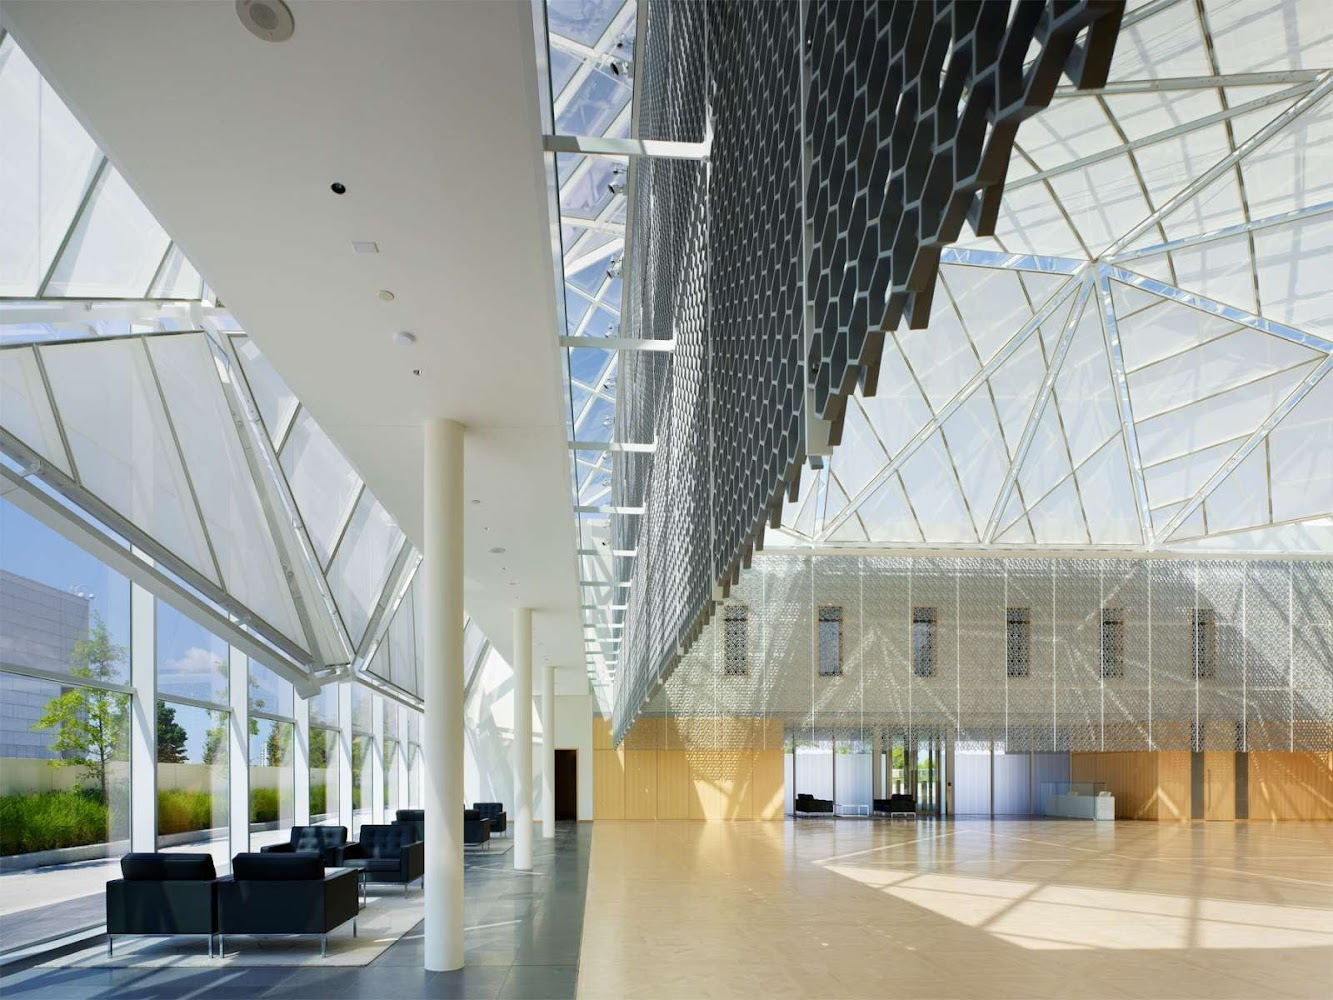 Delegation of the Ismaili Imamat by Maki and